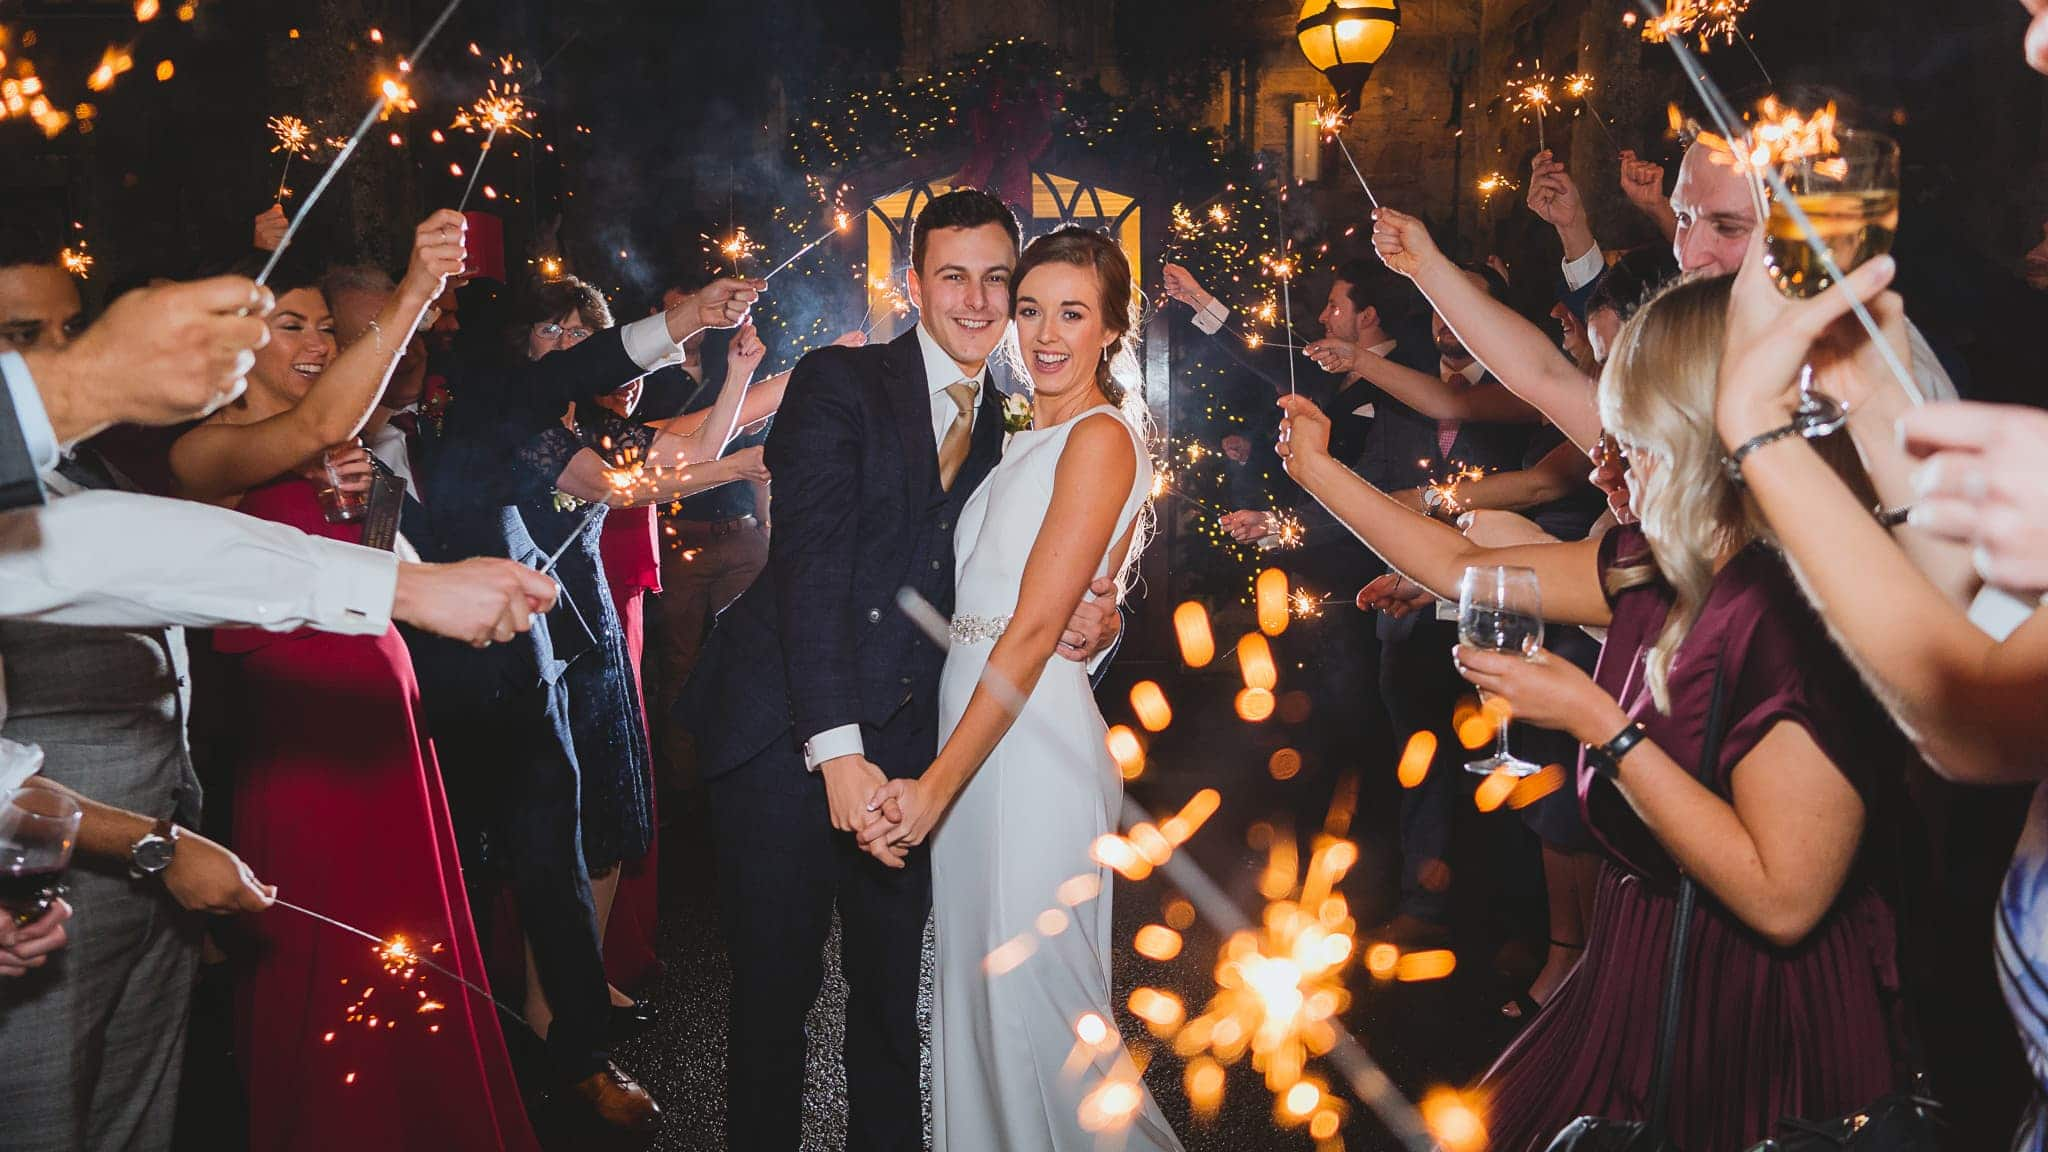 Wedding Sparklers at your wedding